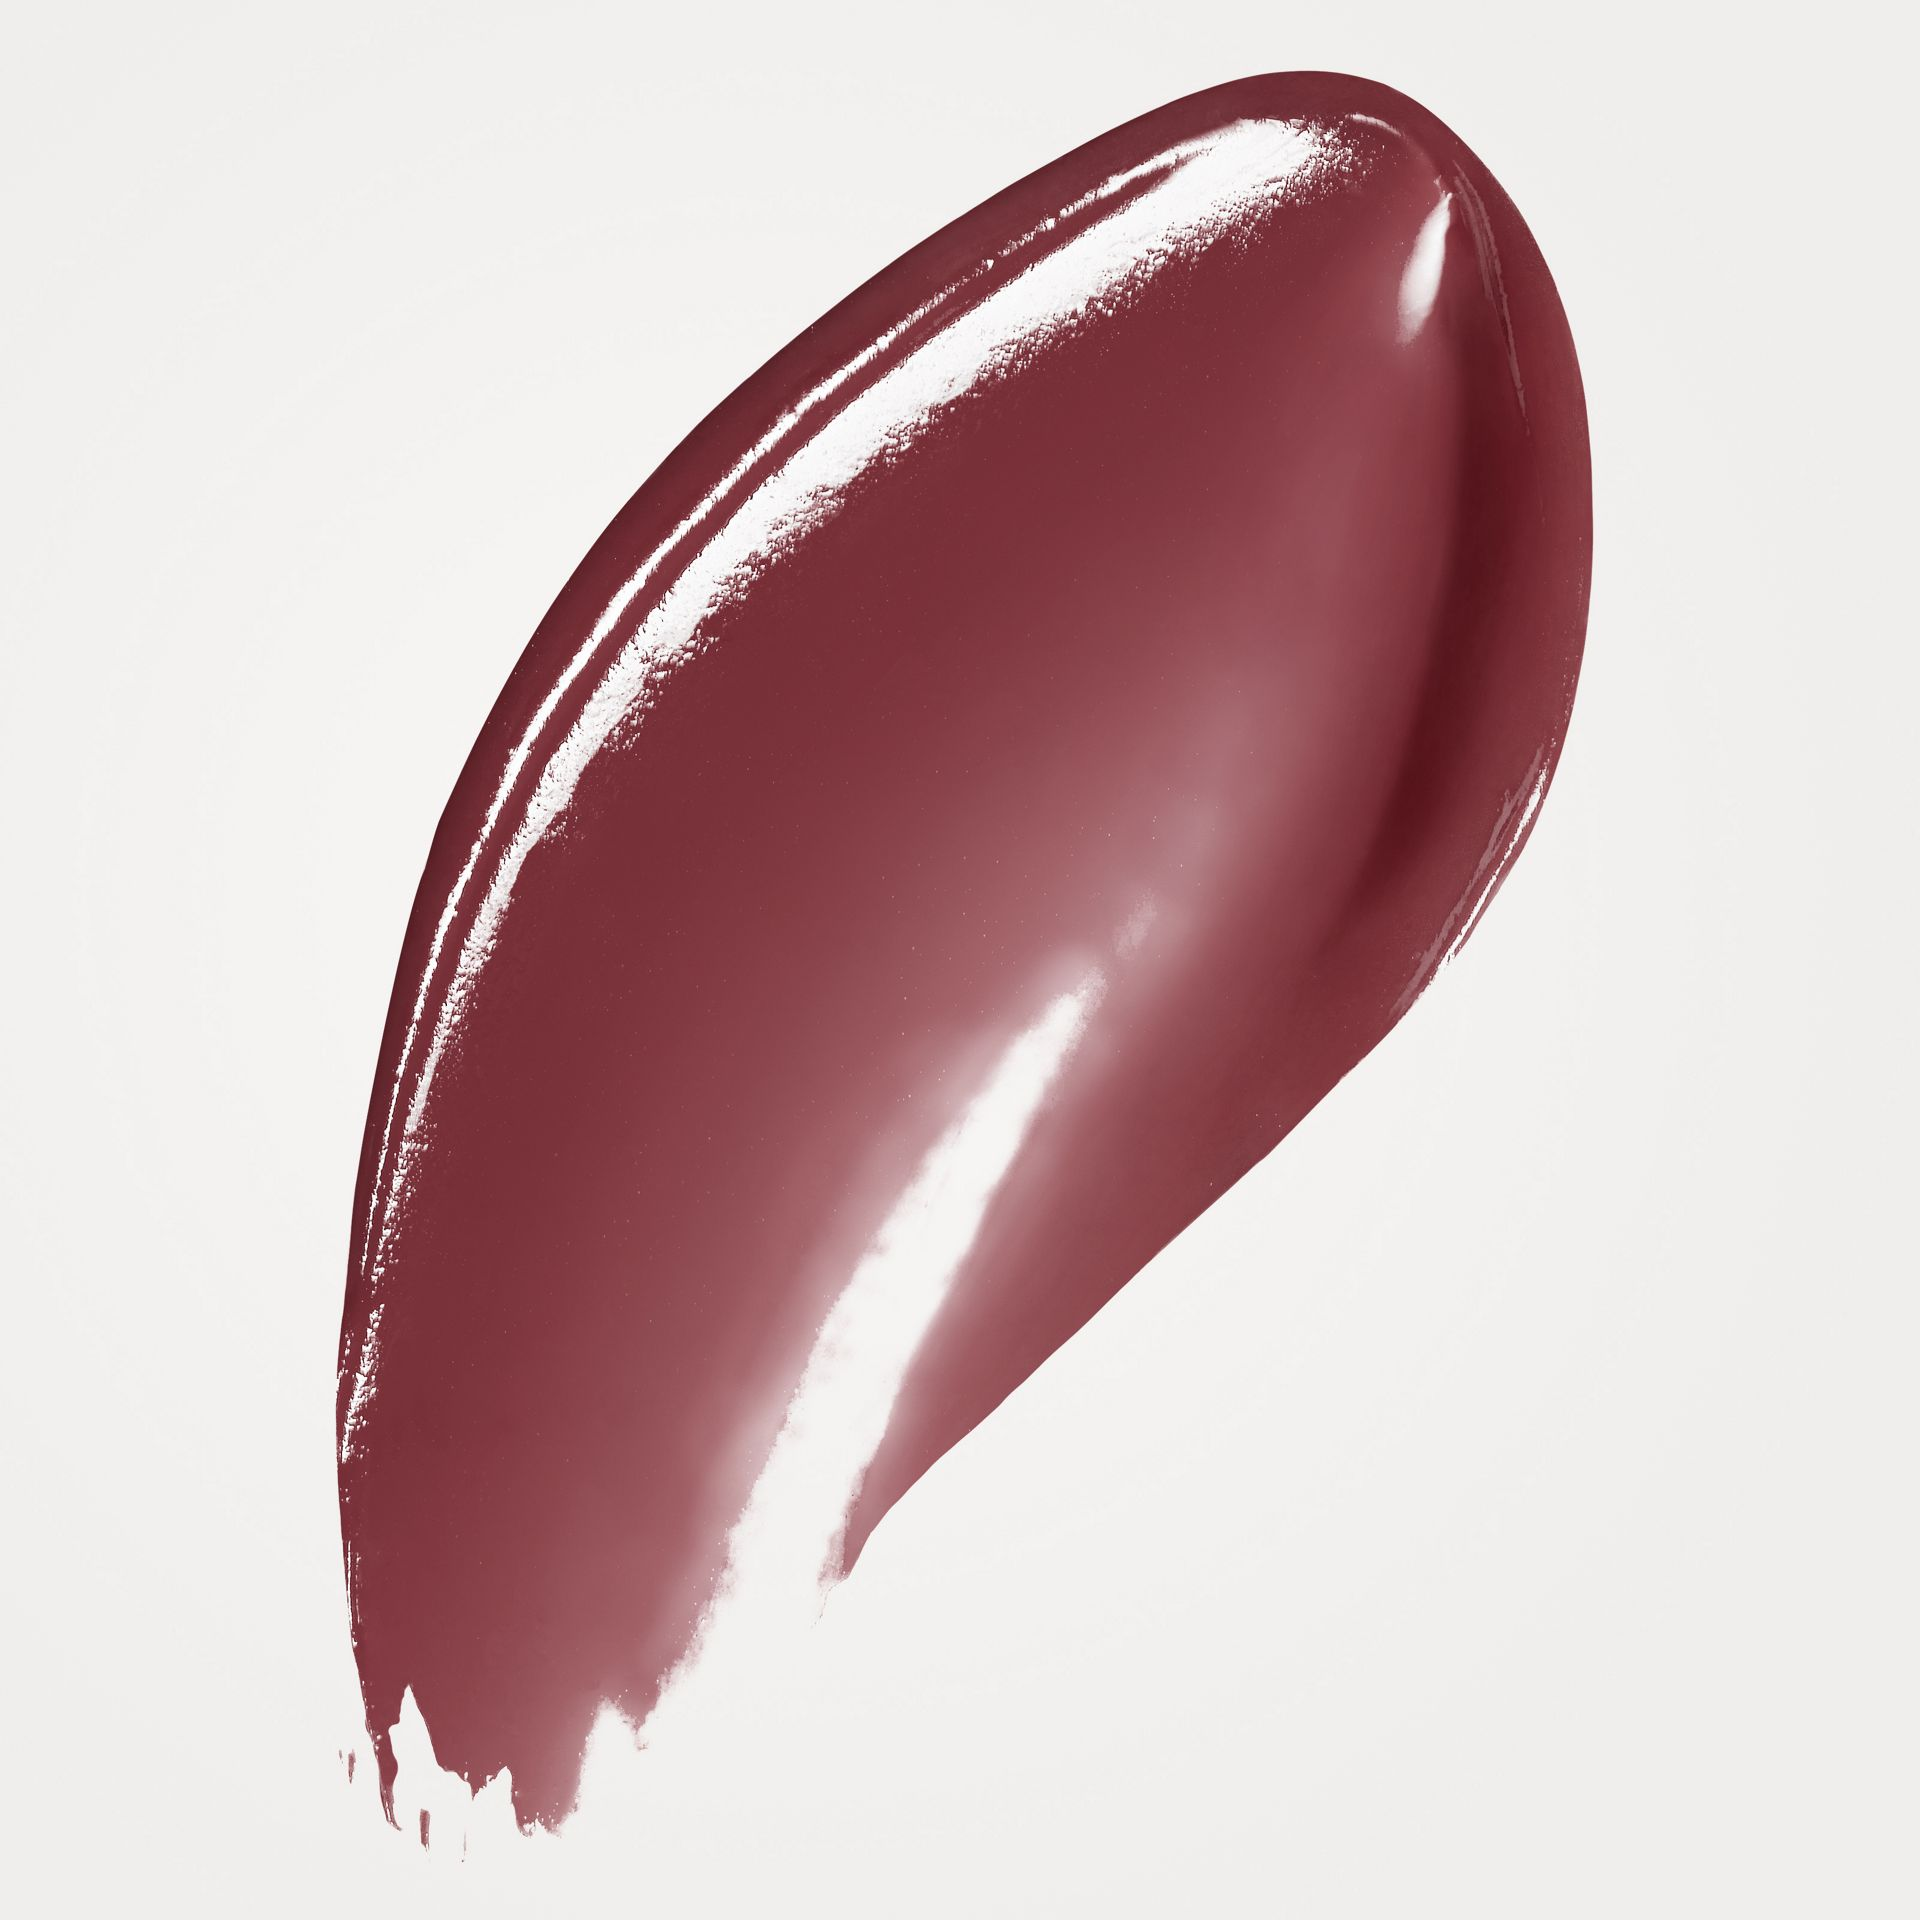 Burberry Kisses - Oxblood No.97 - Donna | Burberry - immagine della galleria 1